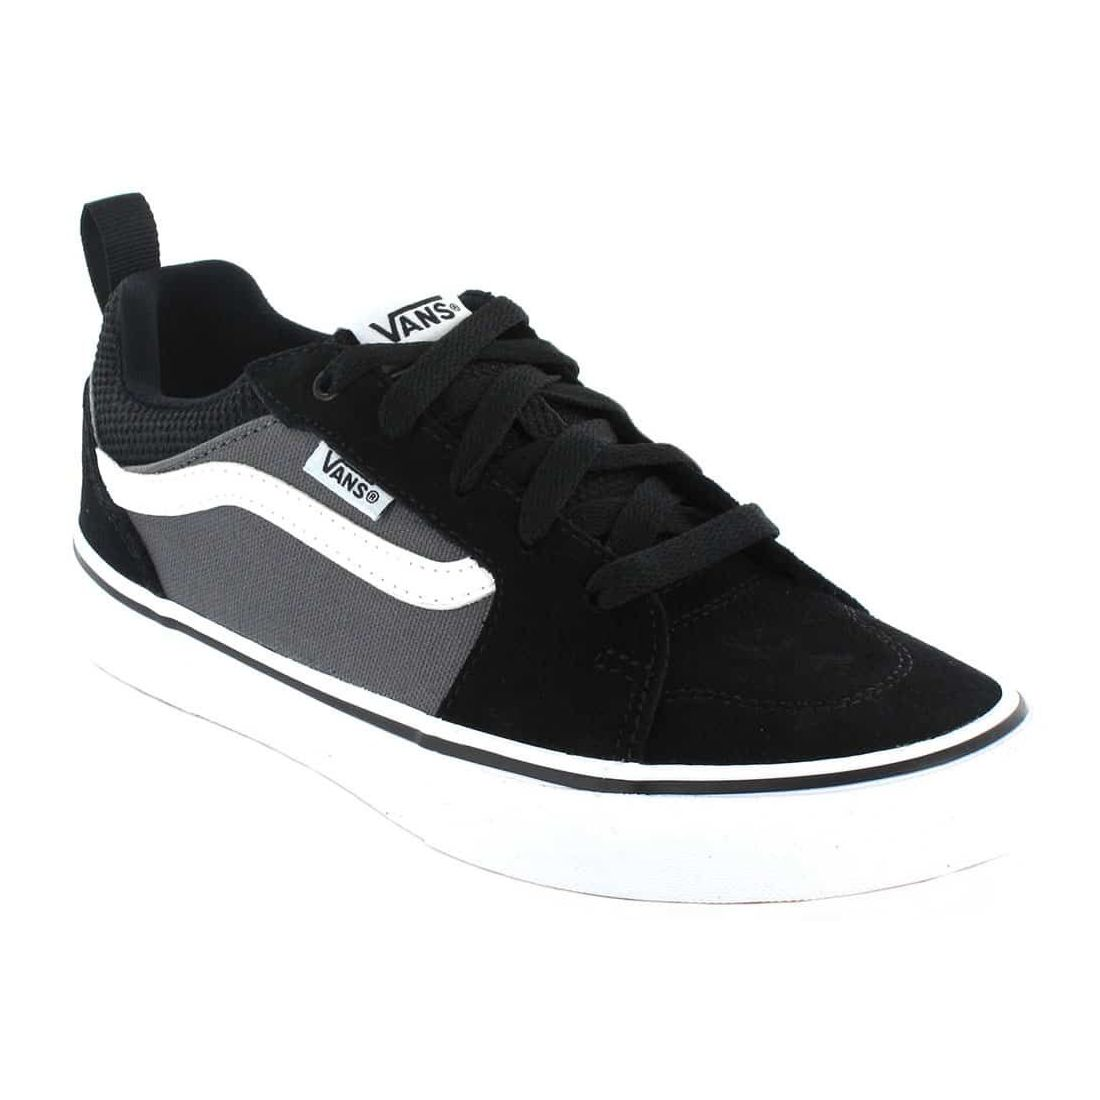 Vans Filmore Black And Grey